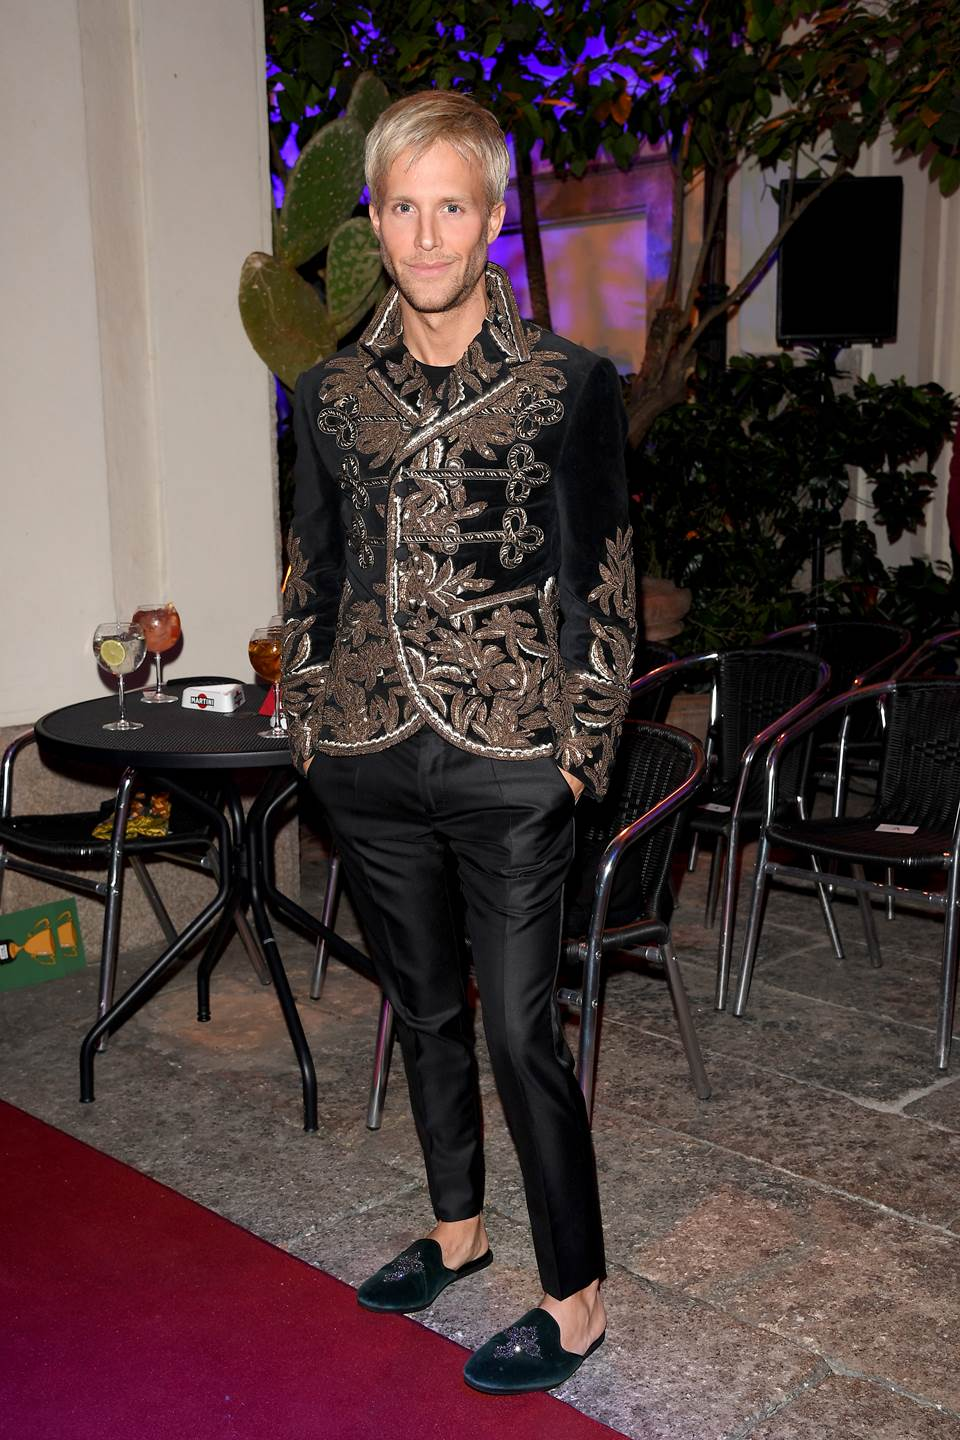 enturelli/Getty Images for Dolce & Gabbana via Getty Images